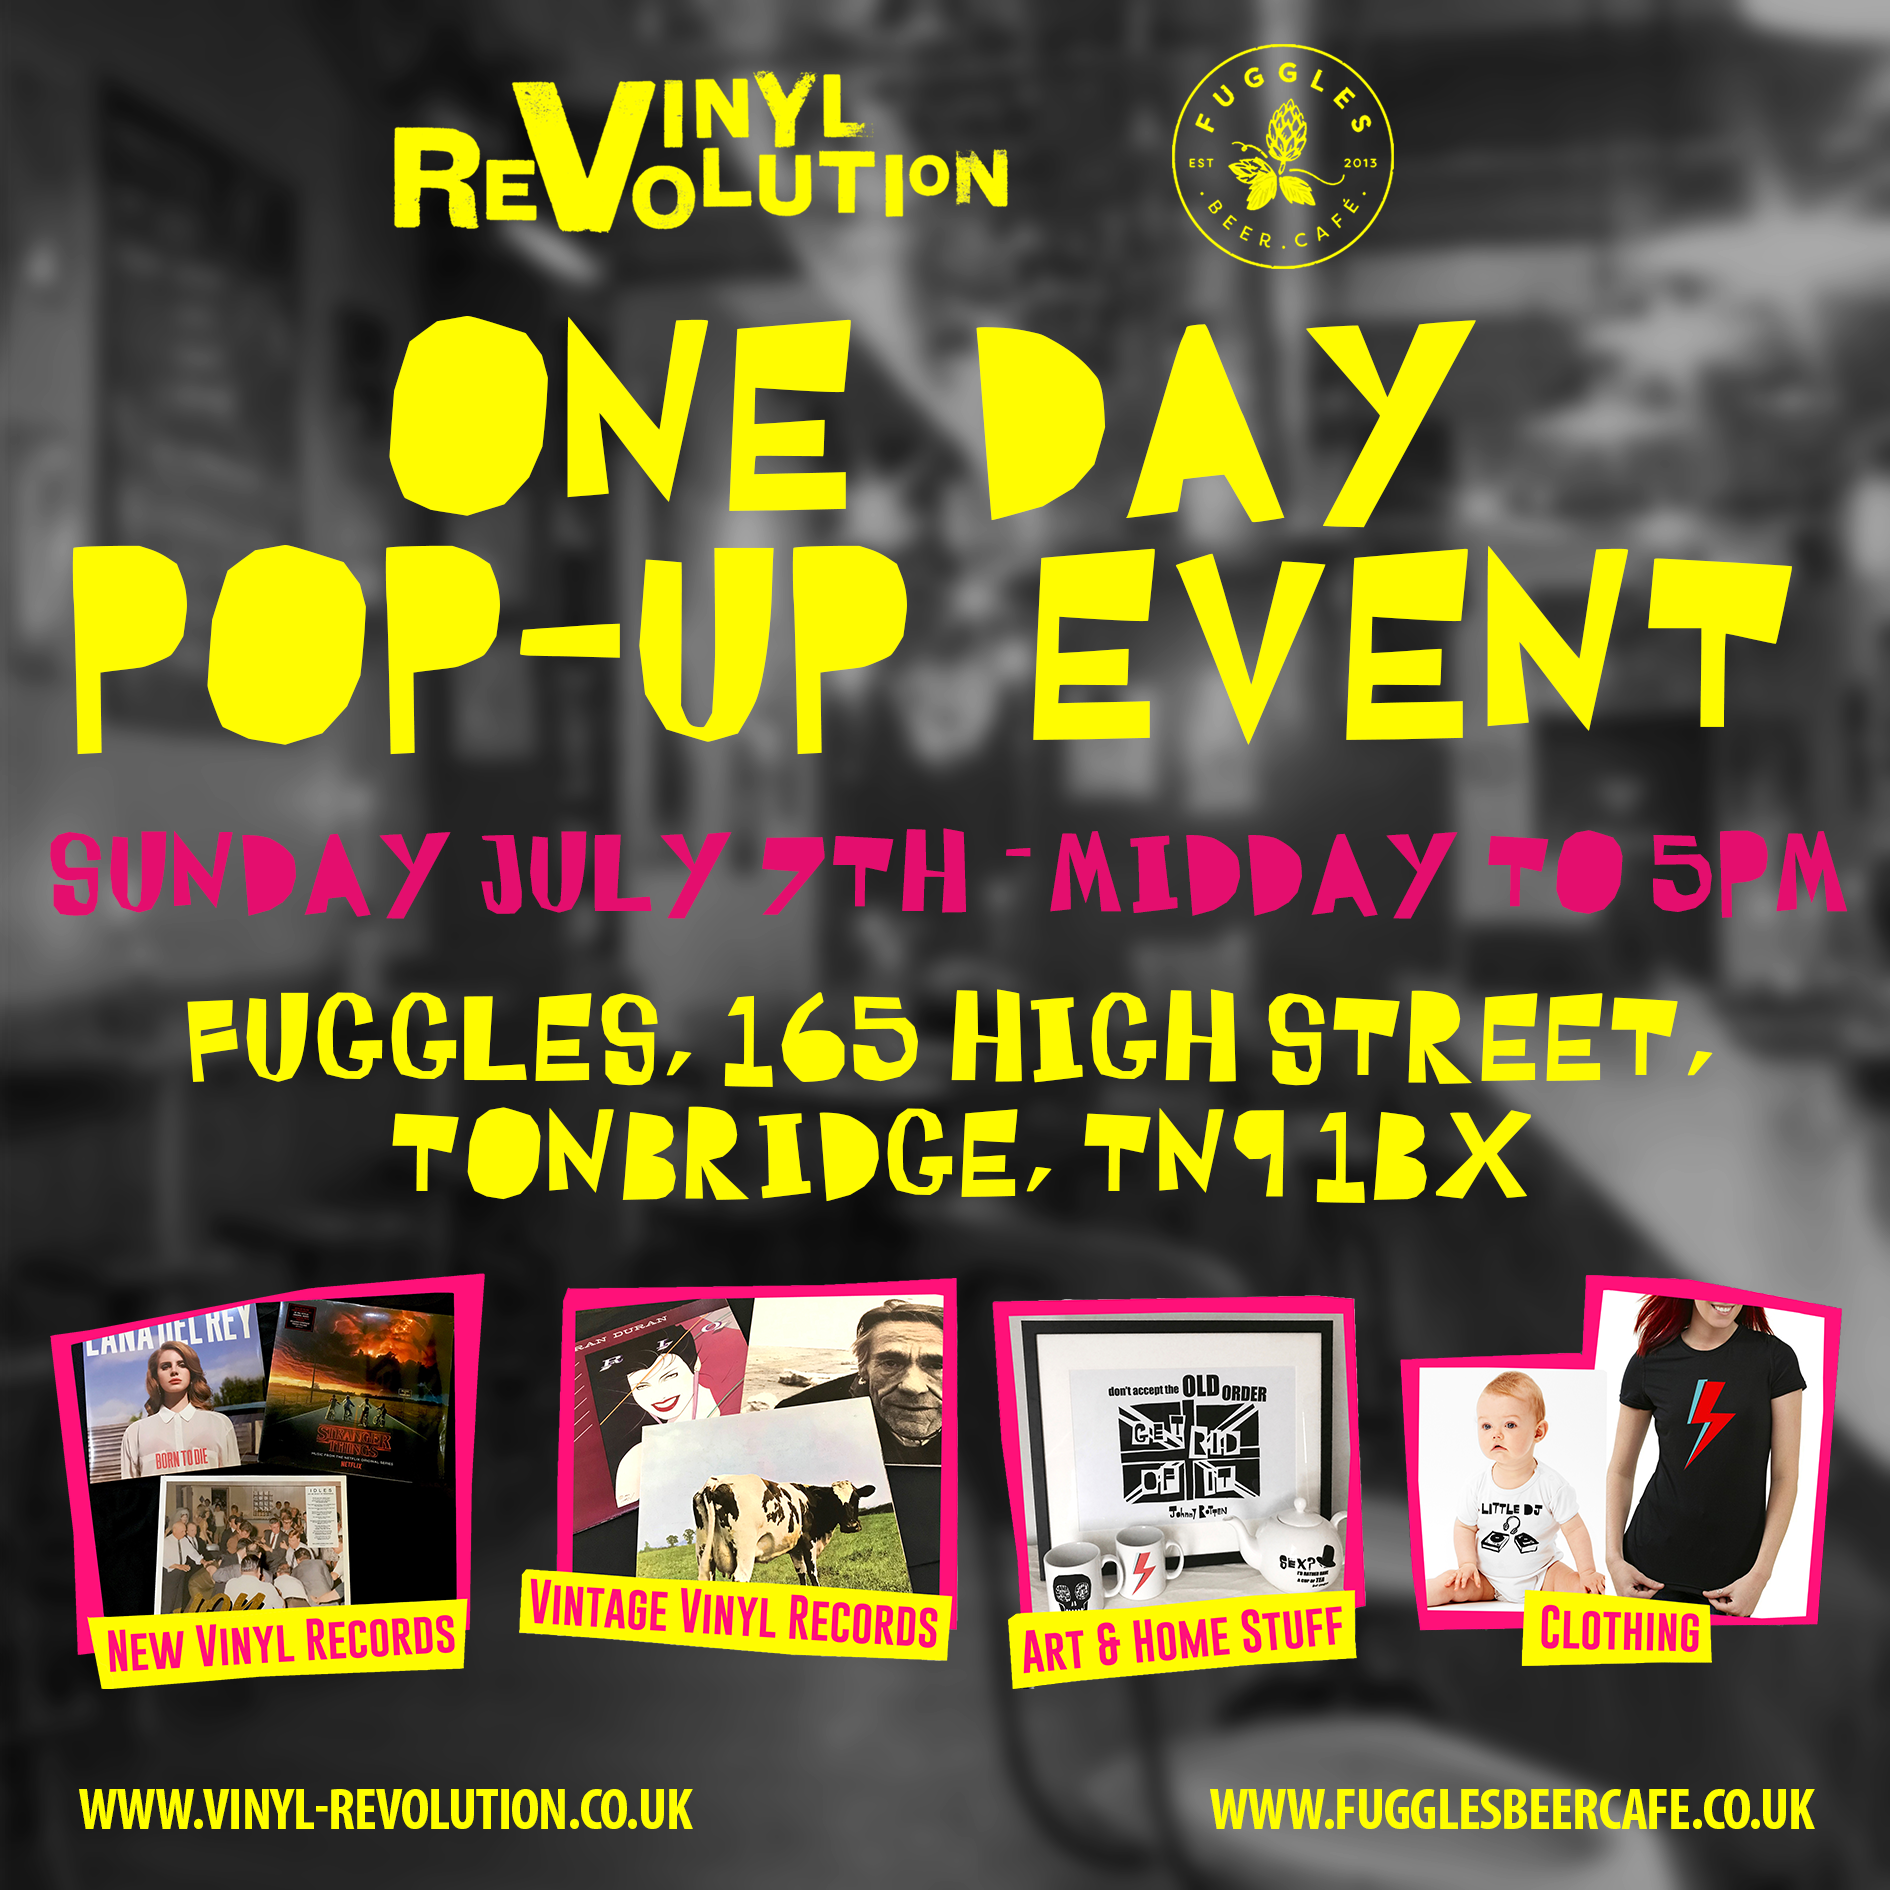 Vinyl Revolution vinyl store pop-up - Fuggles Beer Café Tonbridge, Sunday 7th July, 12-5pmThe guys from Vinyl Revolution are back for their latest pop-up and music takeover. They're bringing a heap of new and vintage LPs with them, including plenty of old and new-school sounds, plus some super-cool merch, and a stash of records from co-founder Simon Parker's personal collection to spin throughout the day. Swing by for a pint and pick up some great new records.